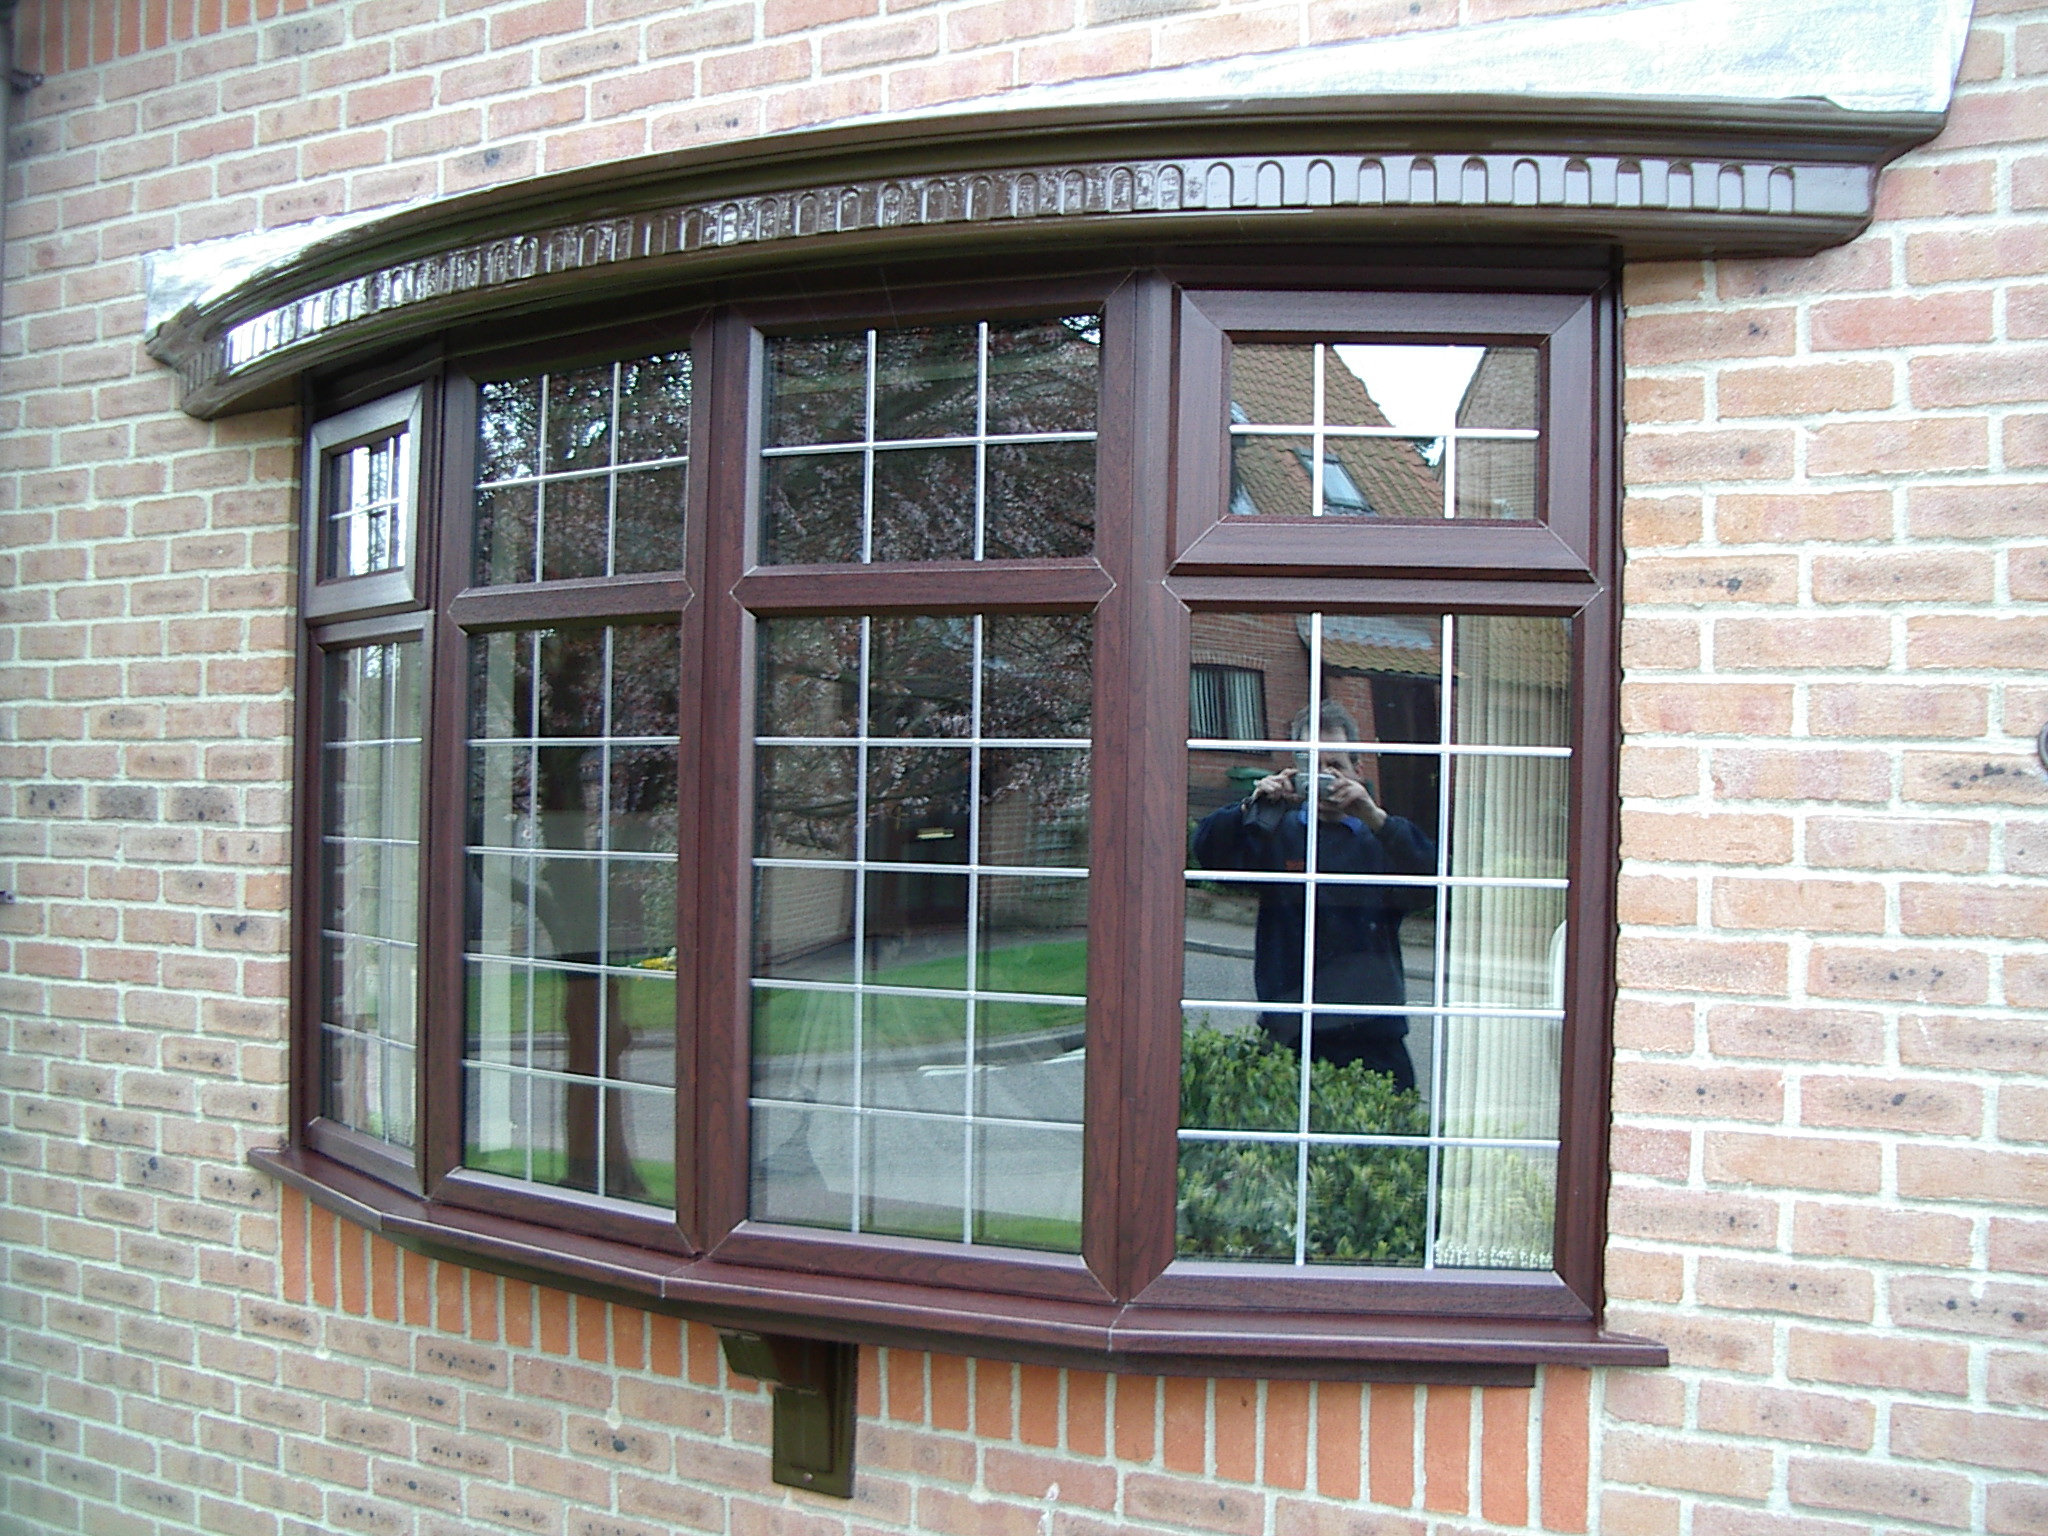 Window design home window designs home windows design for Windows for houses design